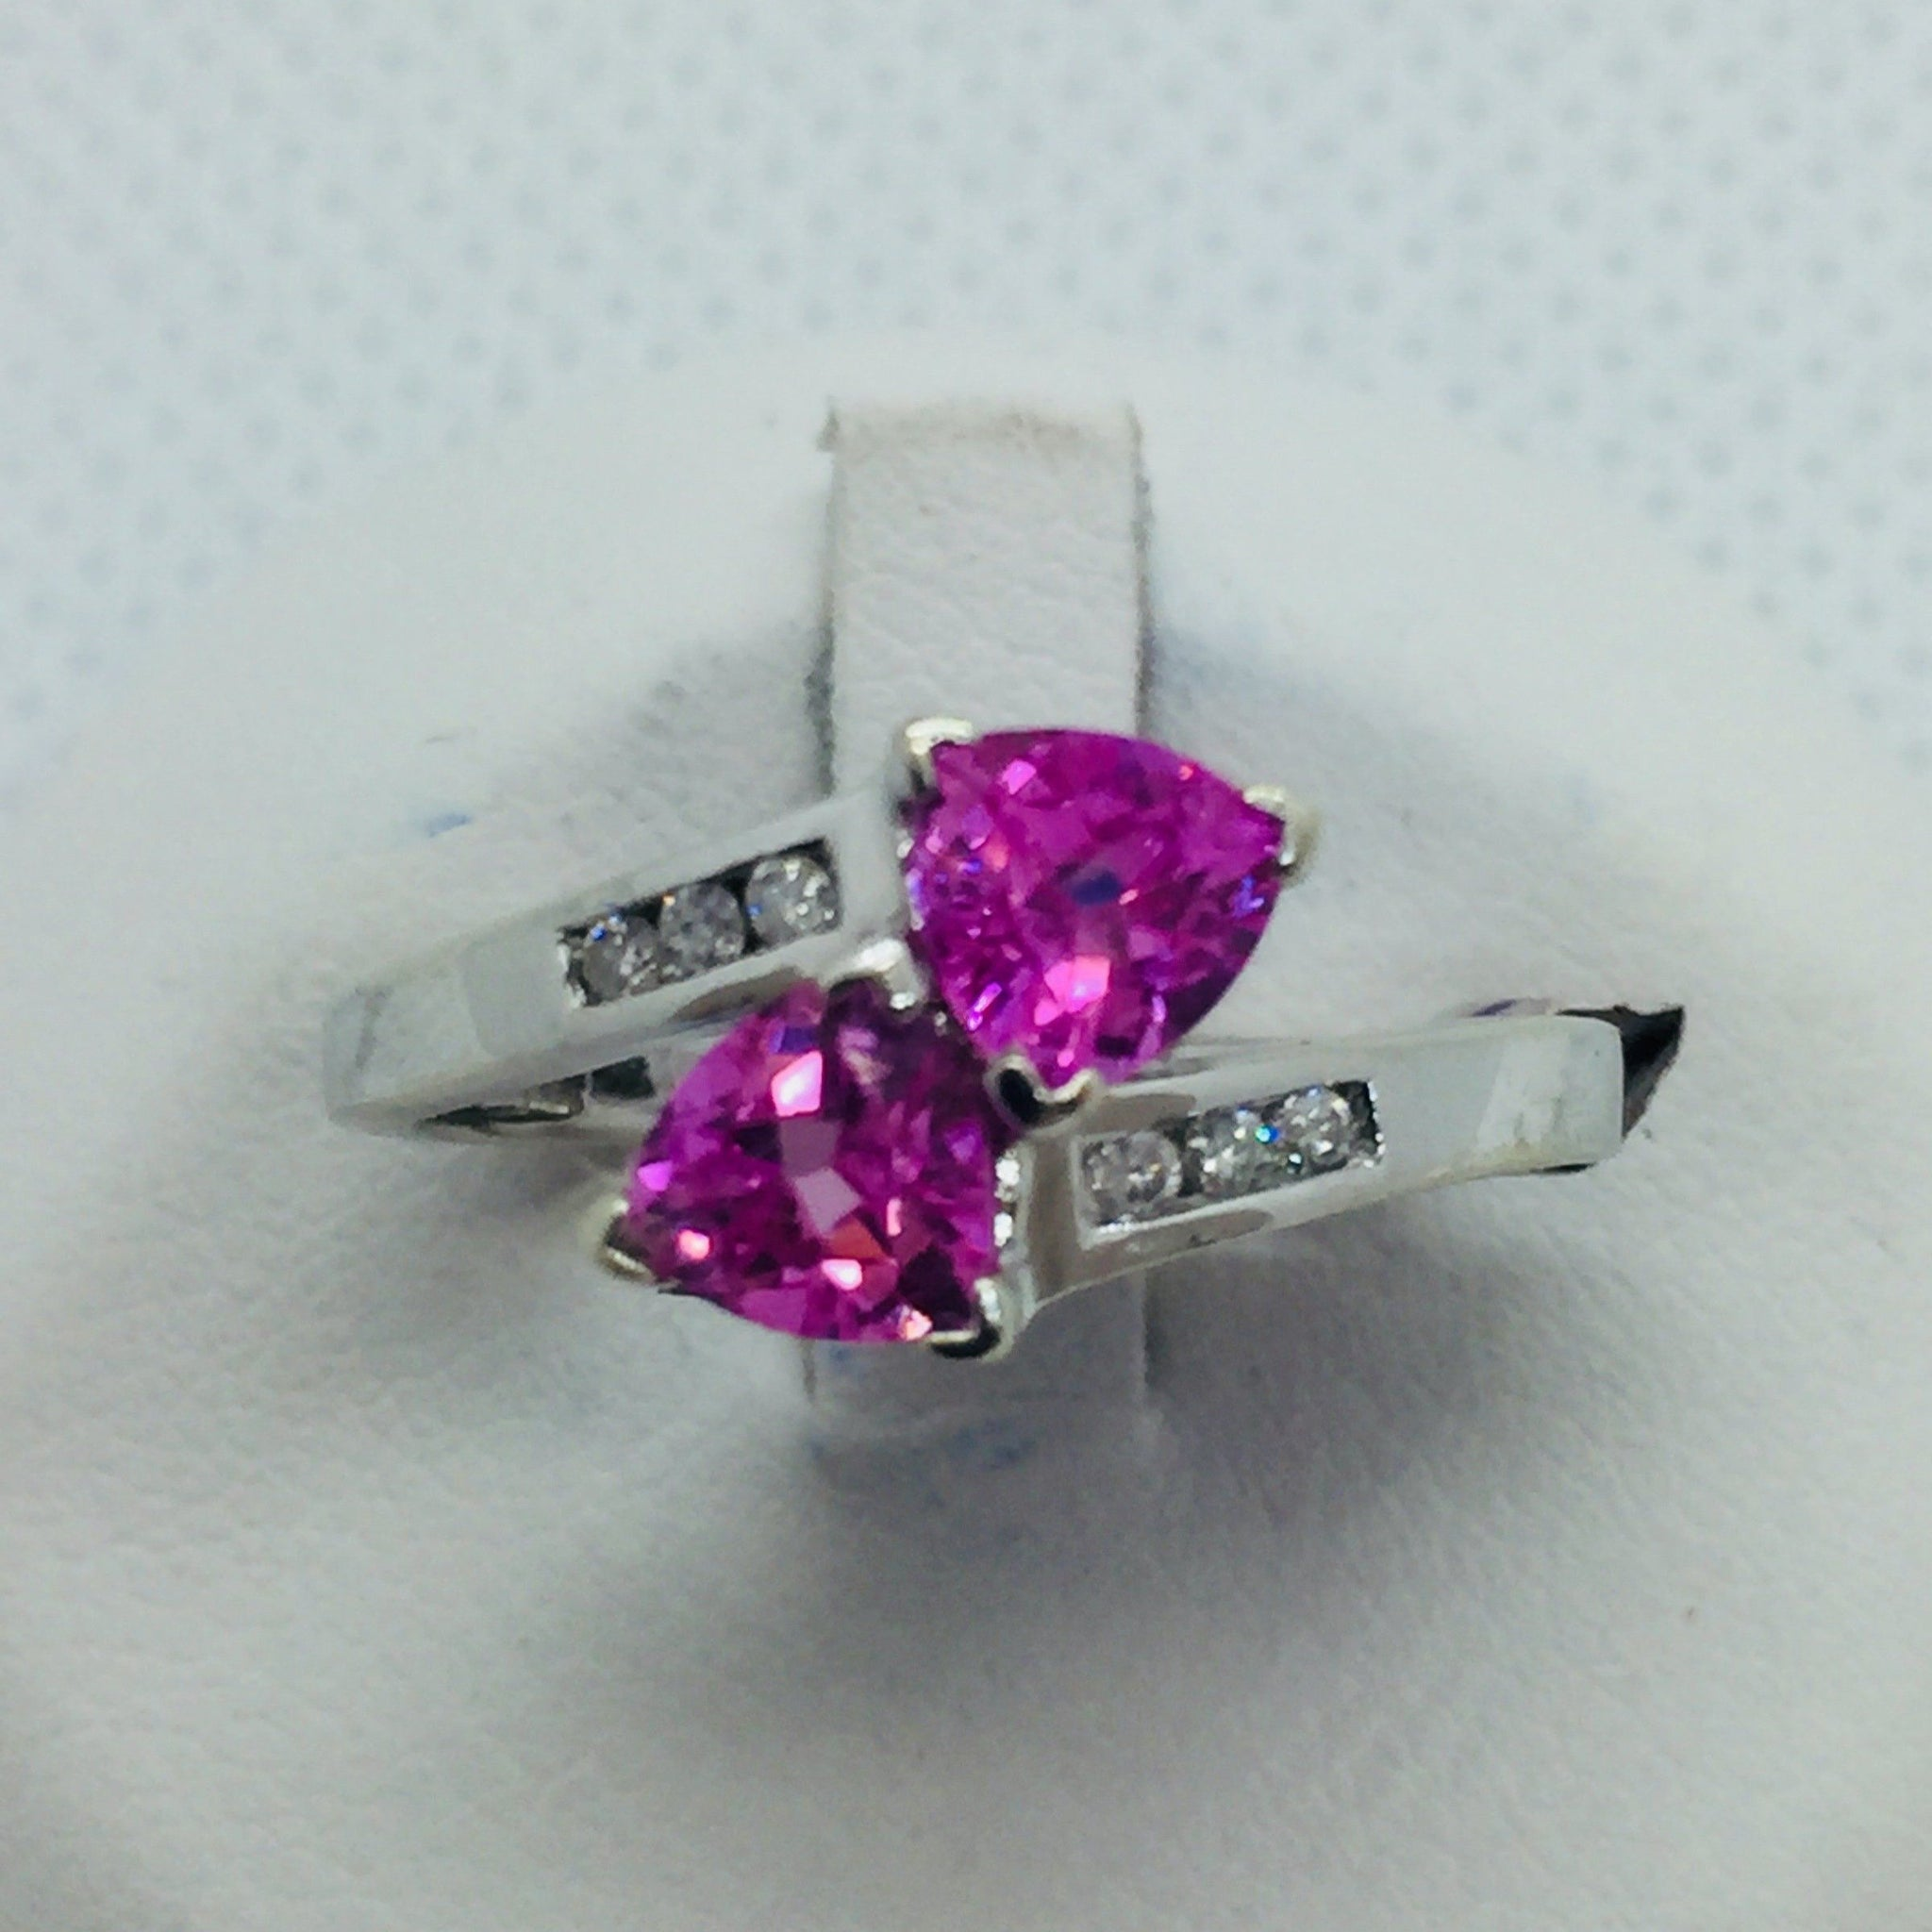 10k Solid White Gold Pink Topaz & Diamonds Ring, size 7